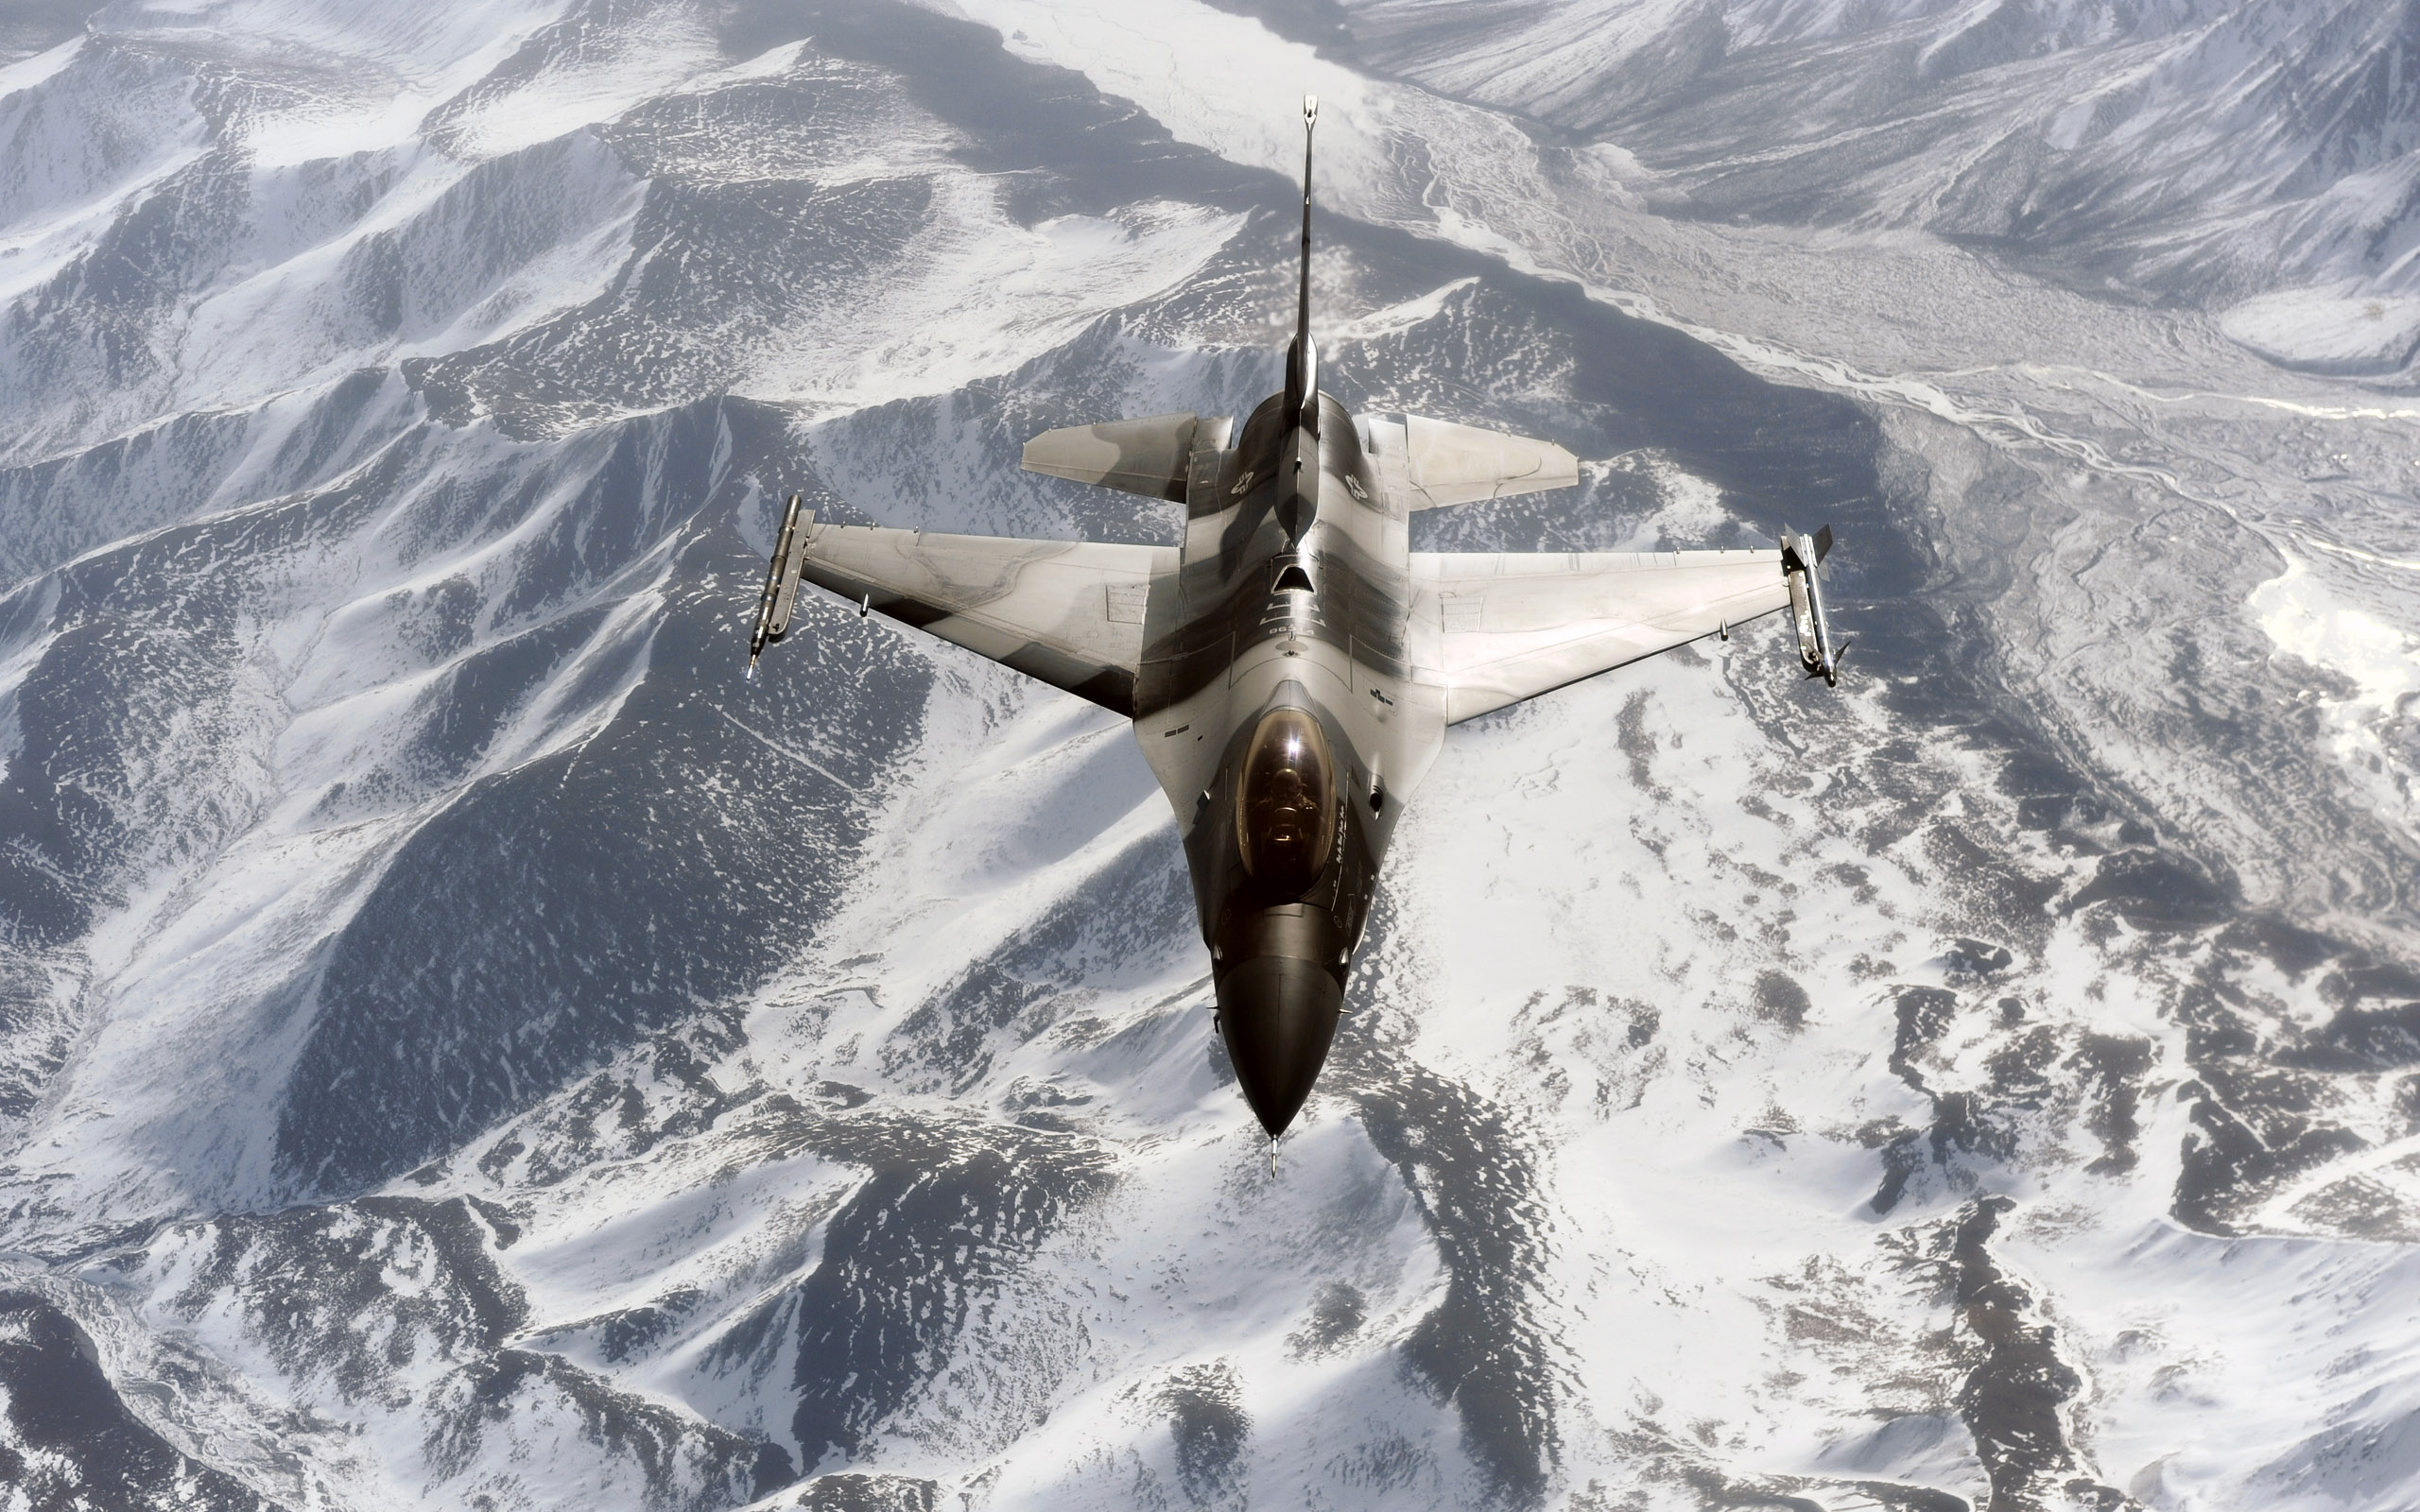 F 16 Aggressor Over the Joint Pacific Alaskan Range